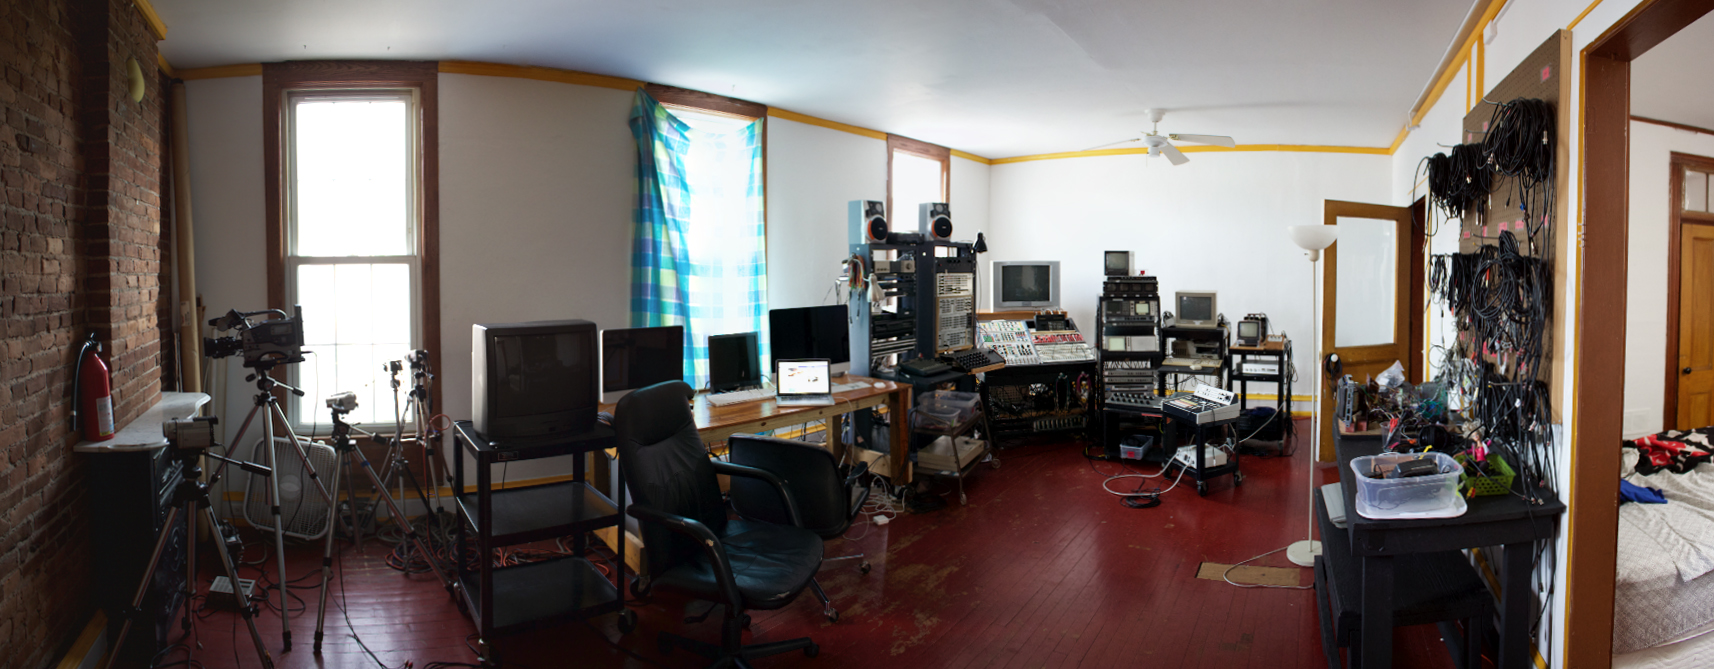 Studio at Signal Culture Residency